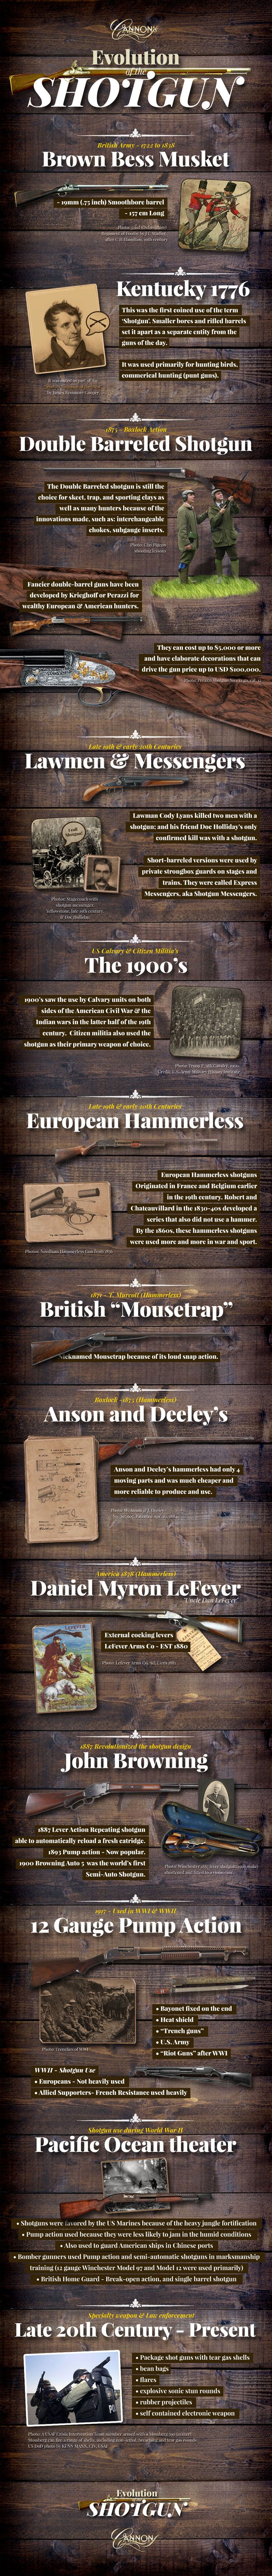 The Evolution of the Shotgun by Cannon Gun Safes | Cannon Safe